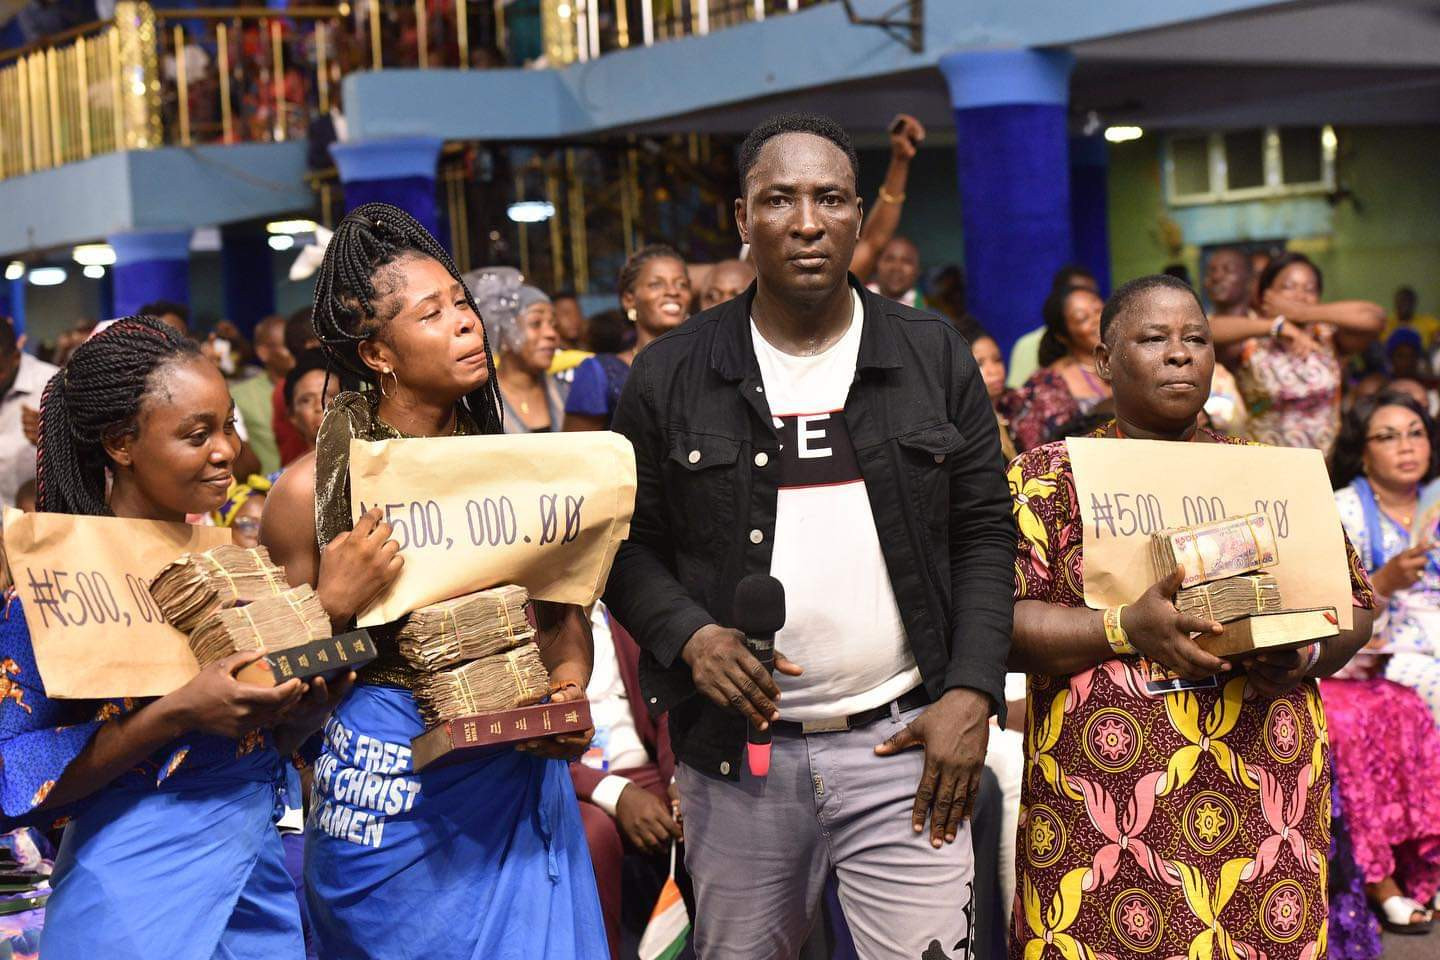 Prophet Jeremiah Gives N500k To Members During Service